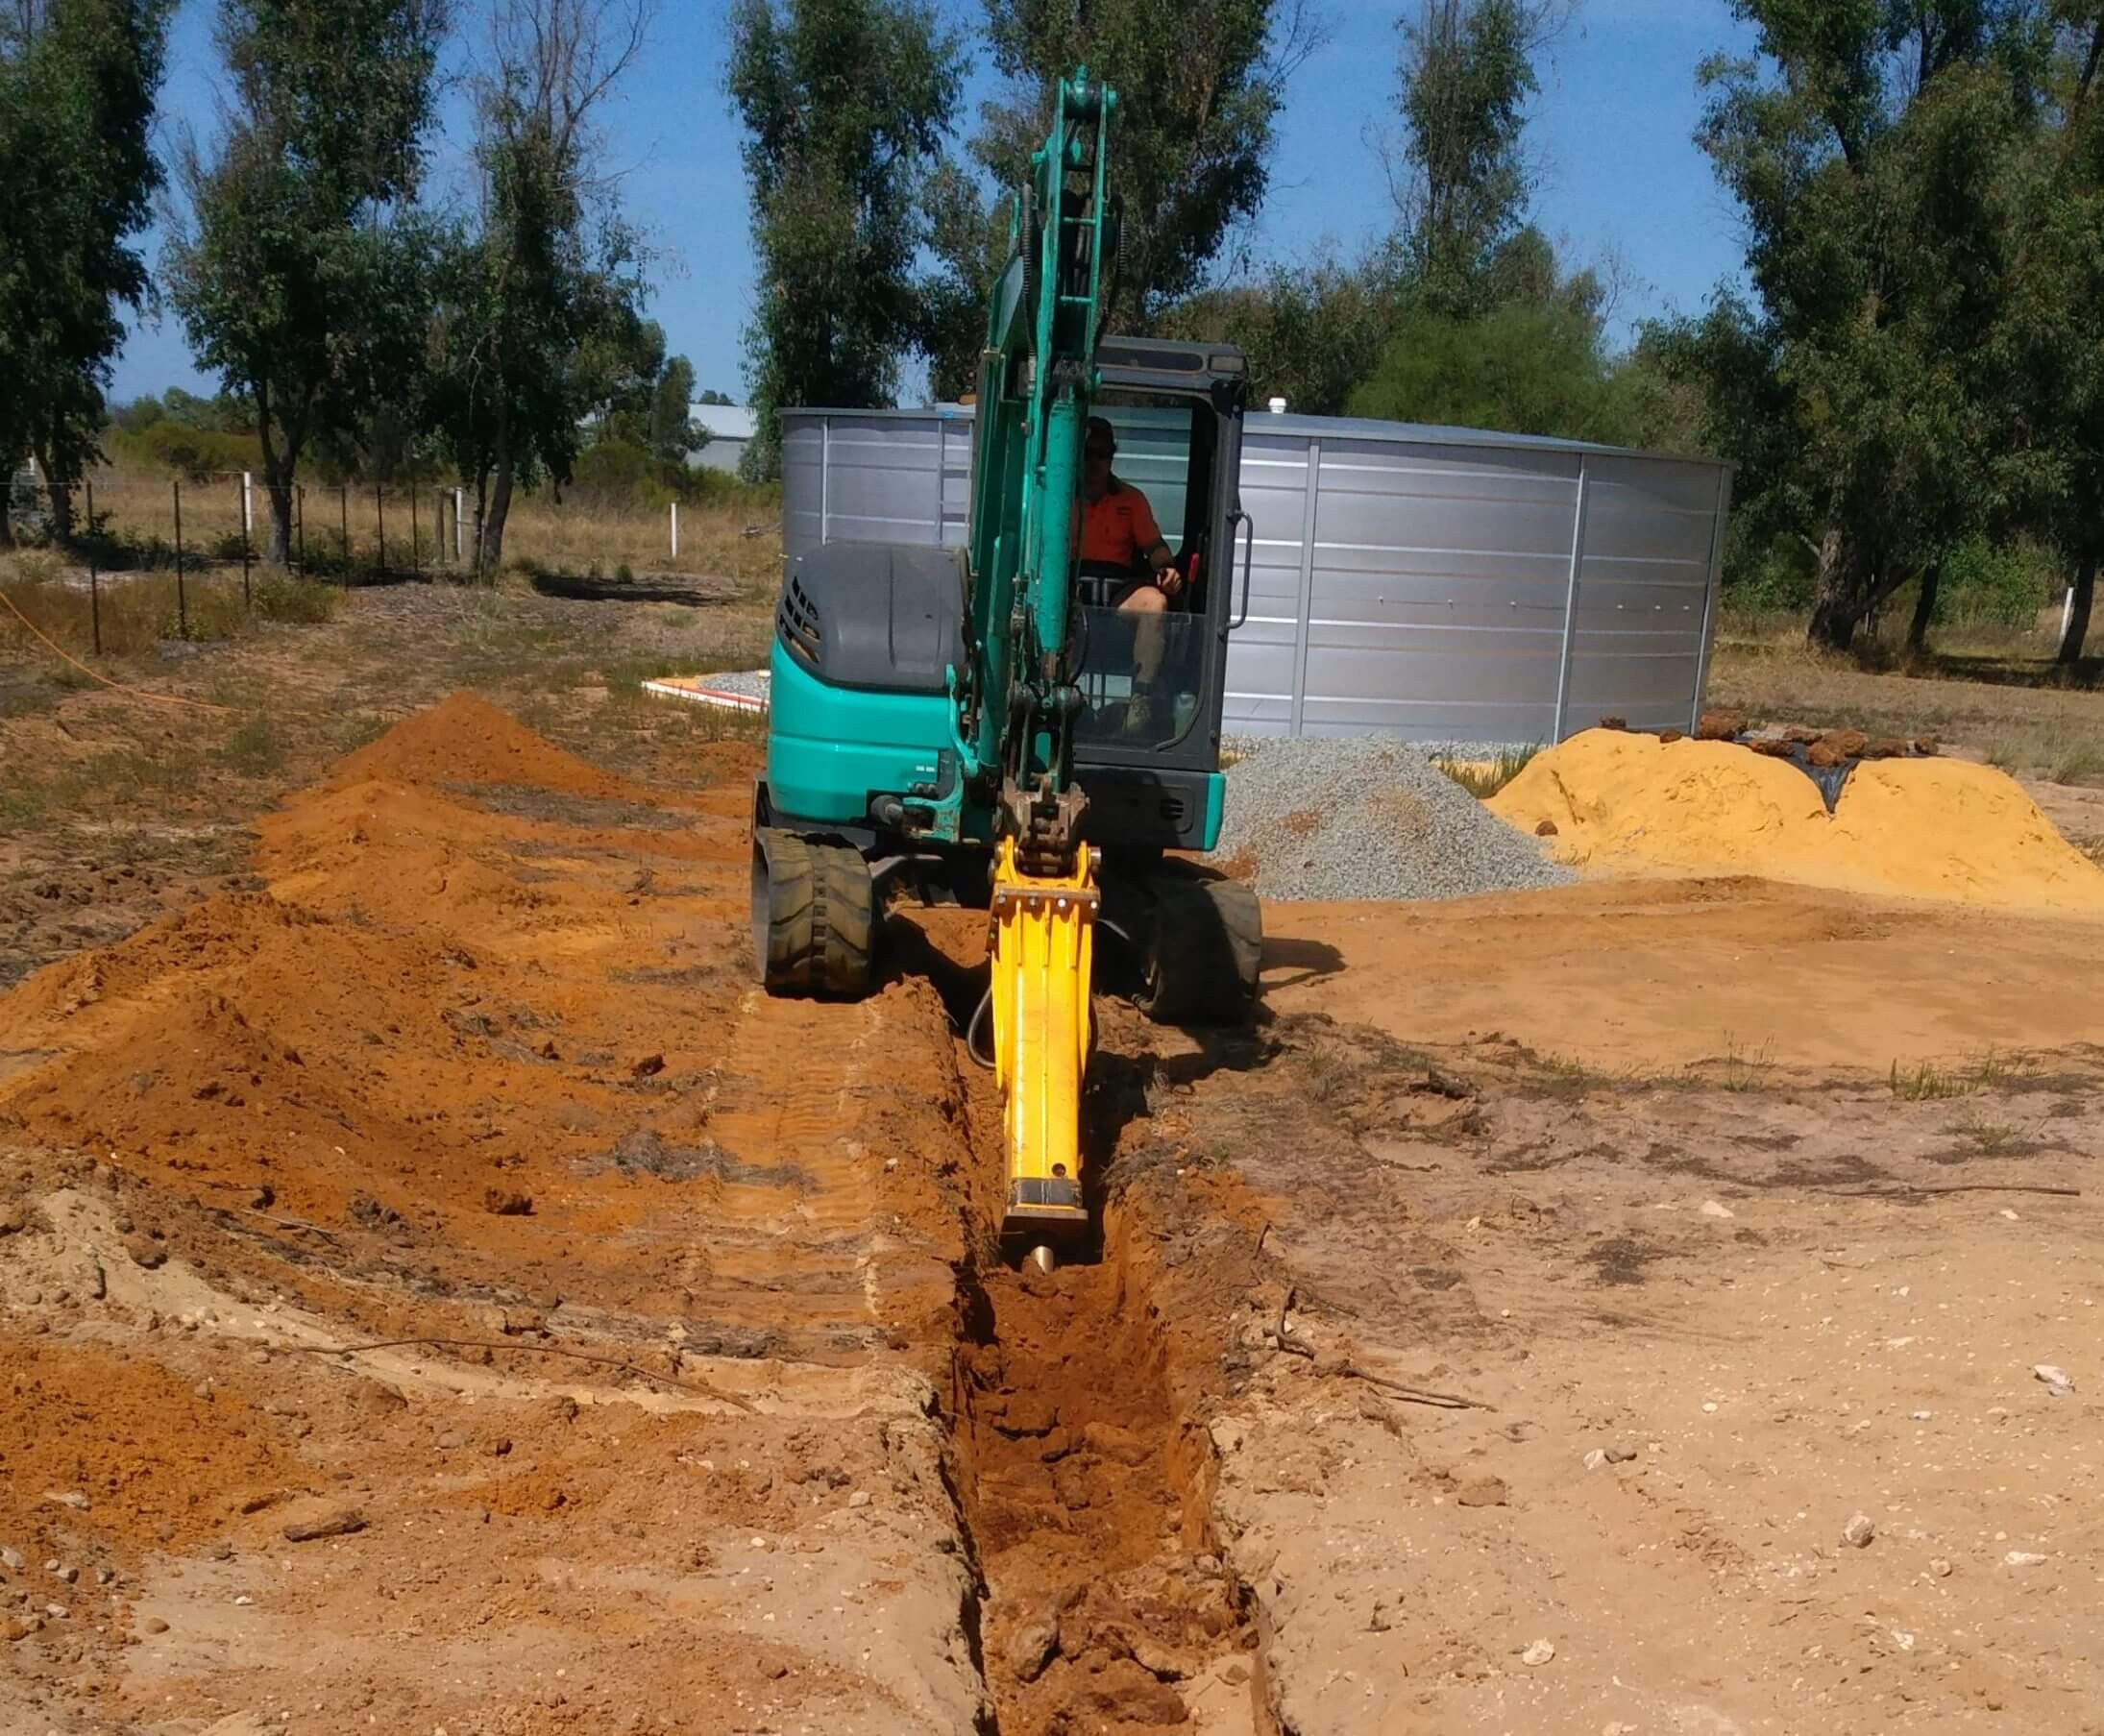 Dobson Excavations Perth Excavation Earthmoving Equipment Hole Drilling Machine